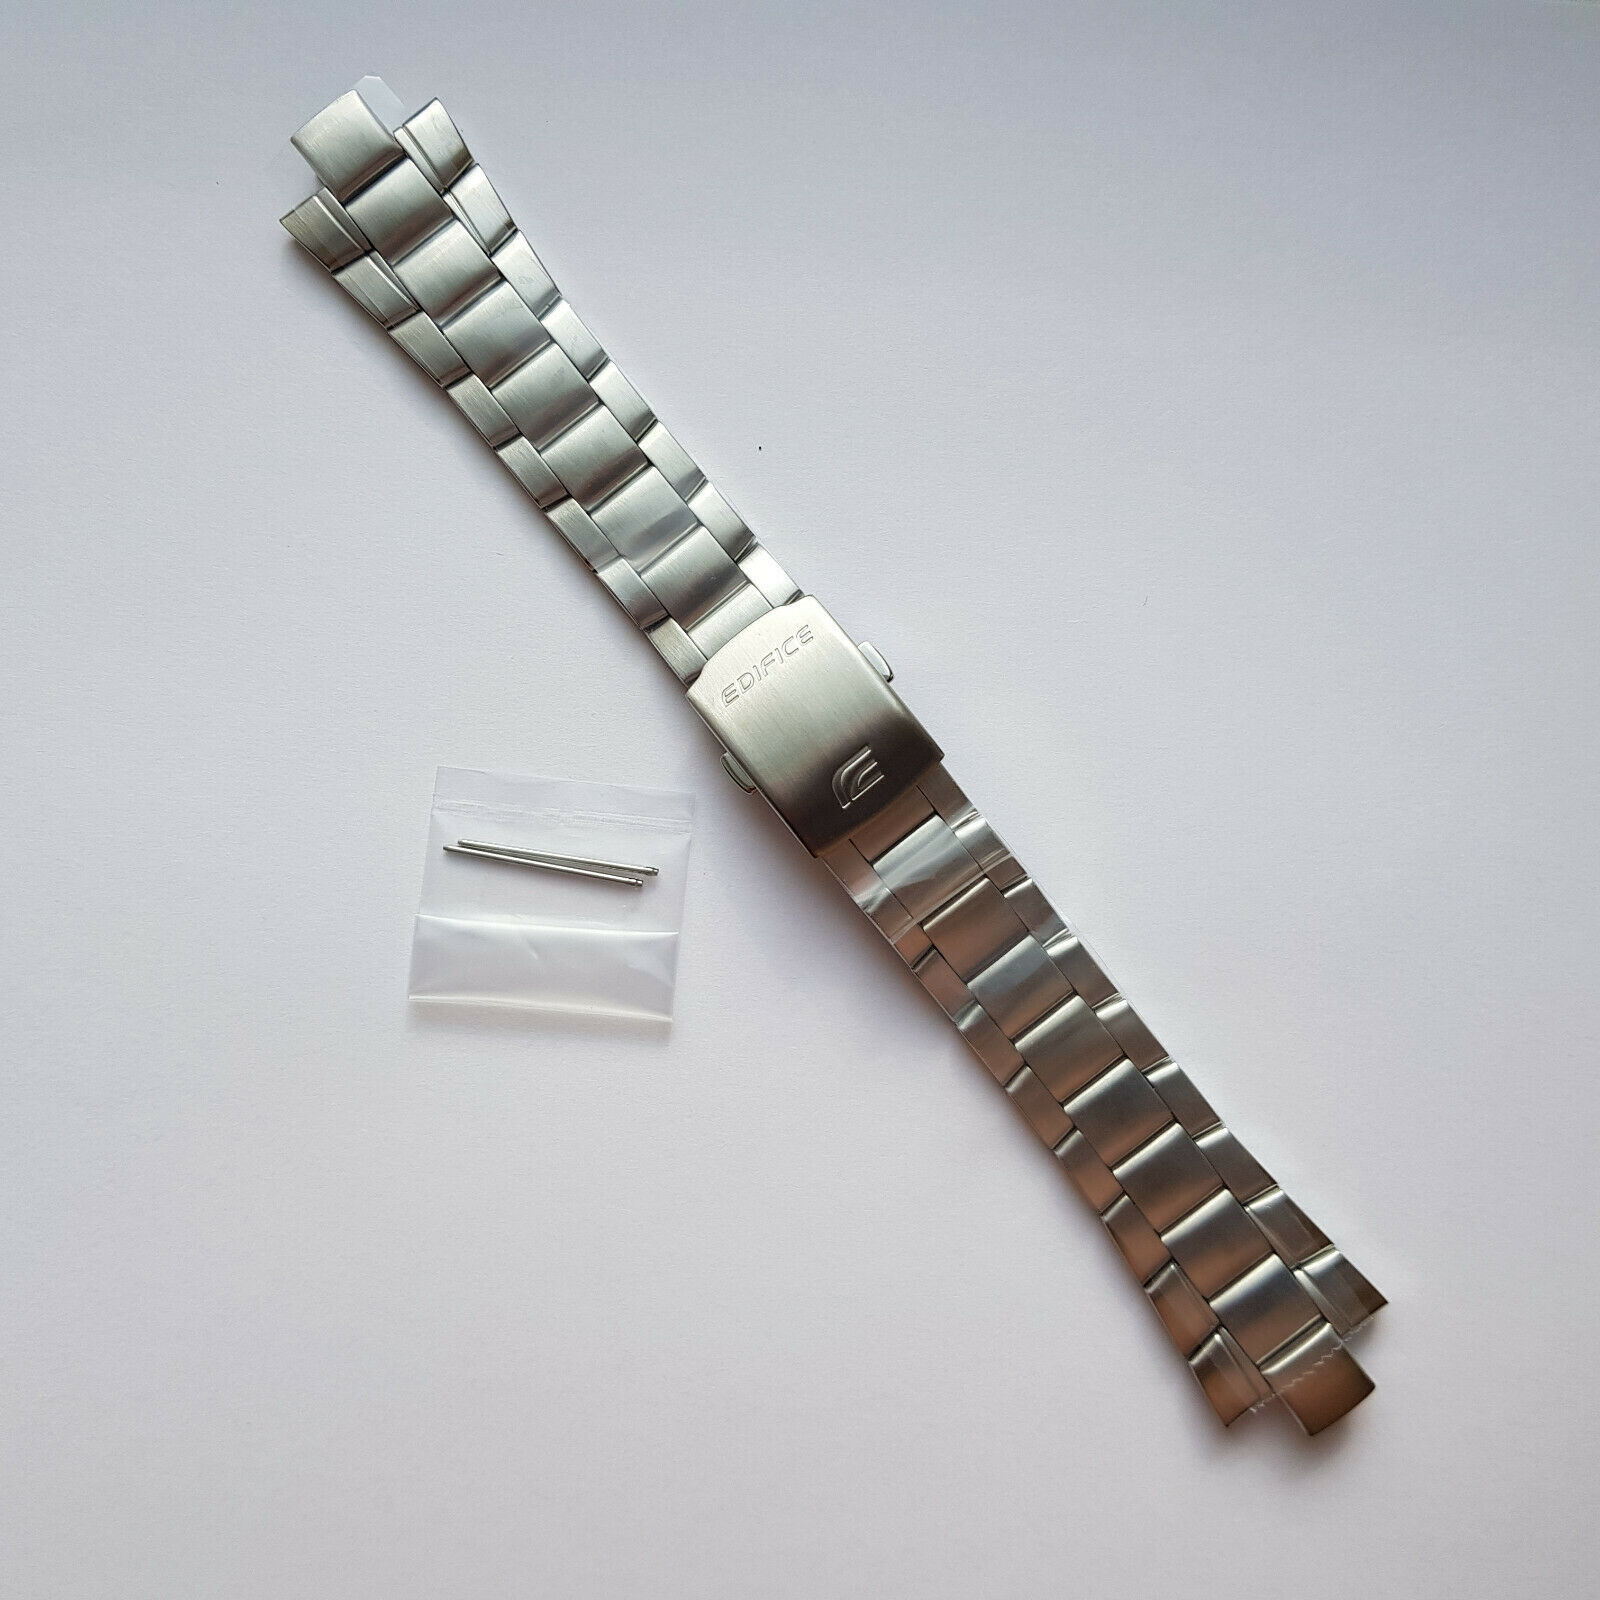 Primary image for Genuine Replacement Watch Band 10mm Stainless Steel Bracelet Casio EF-125D-1A